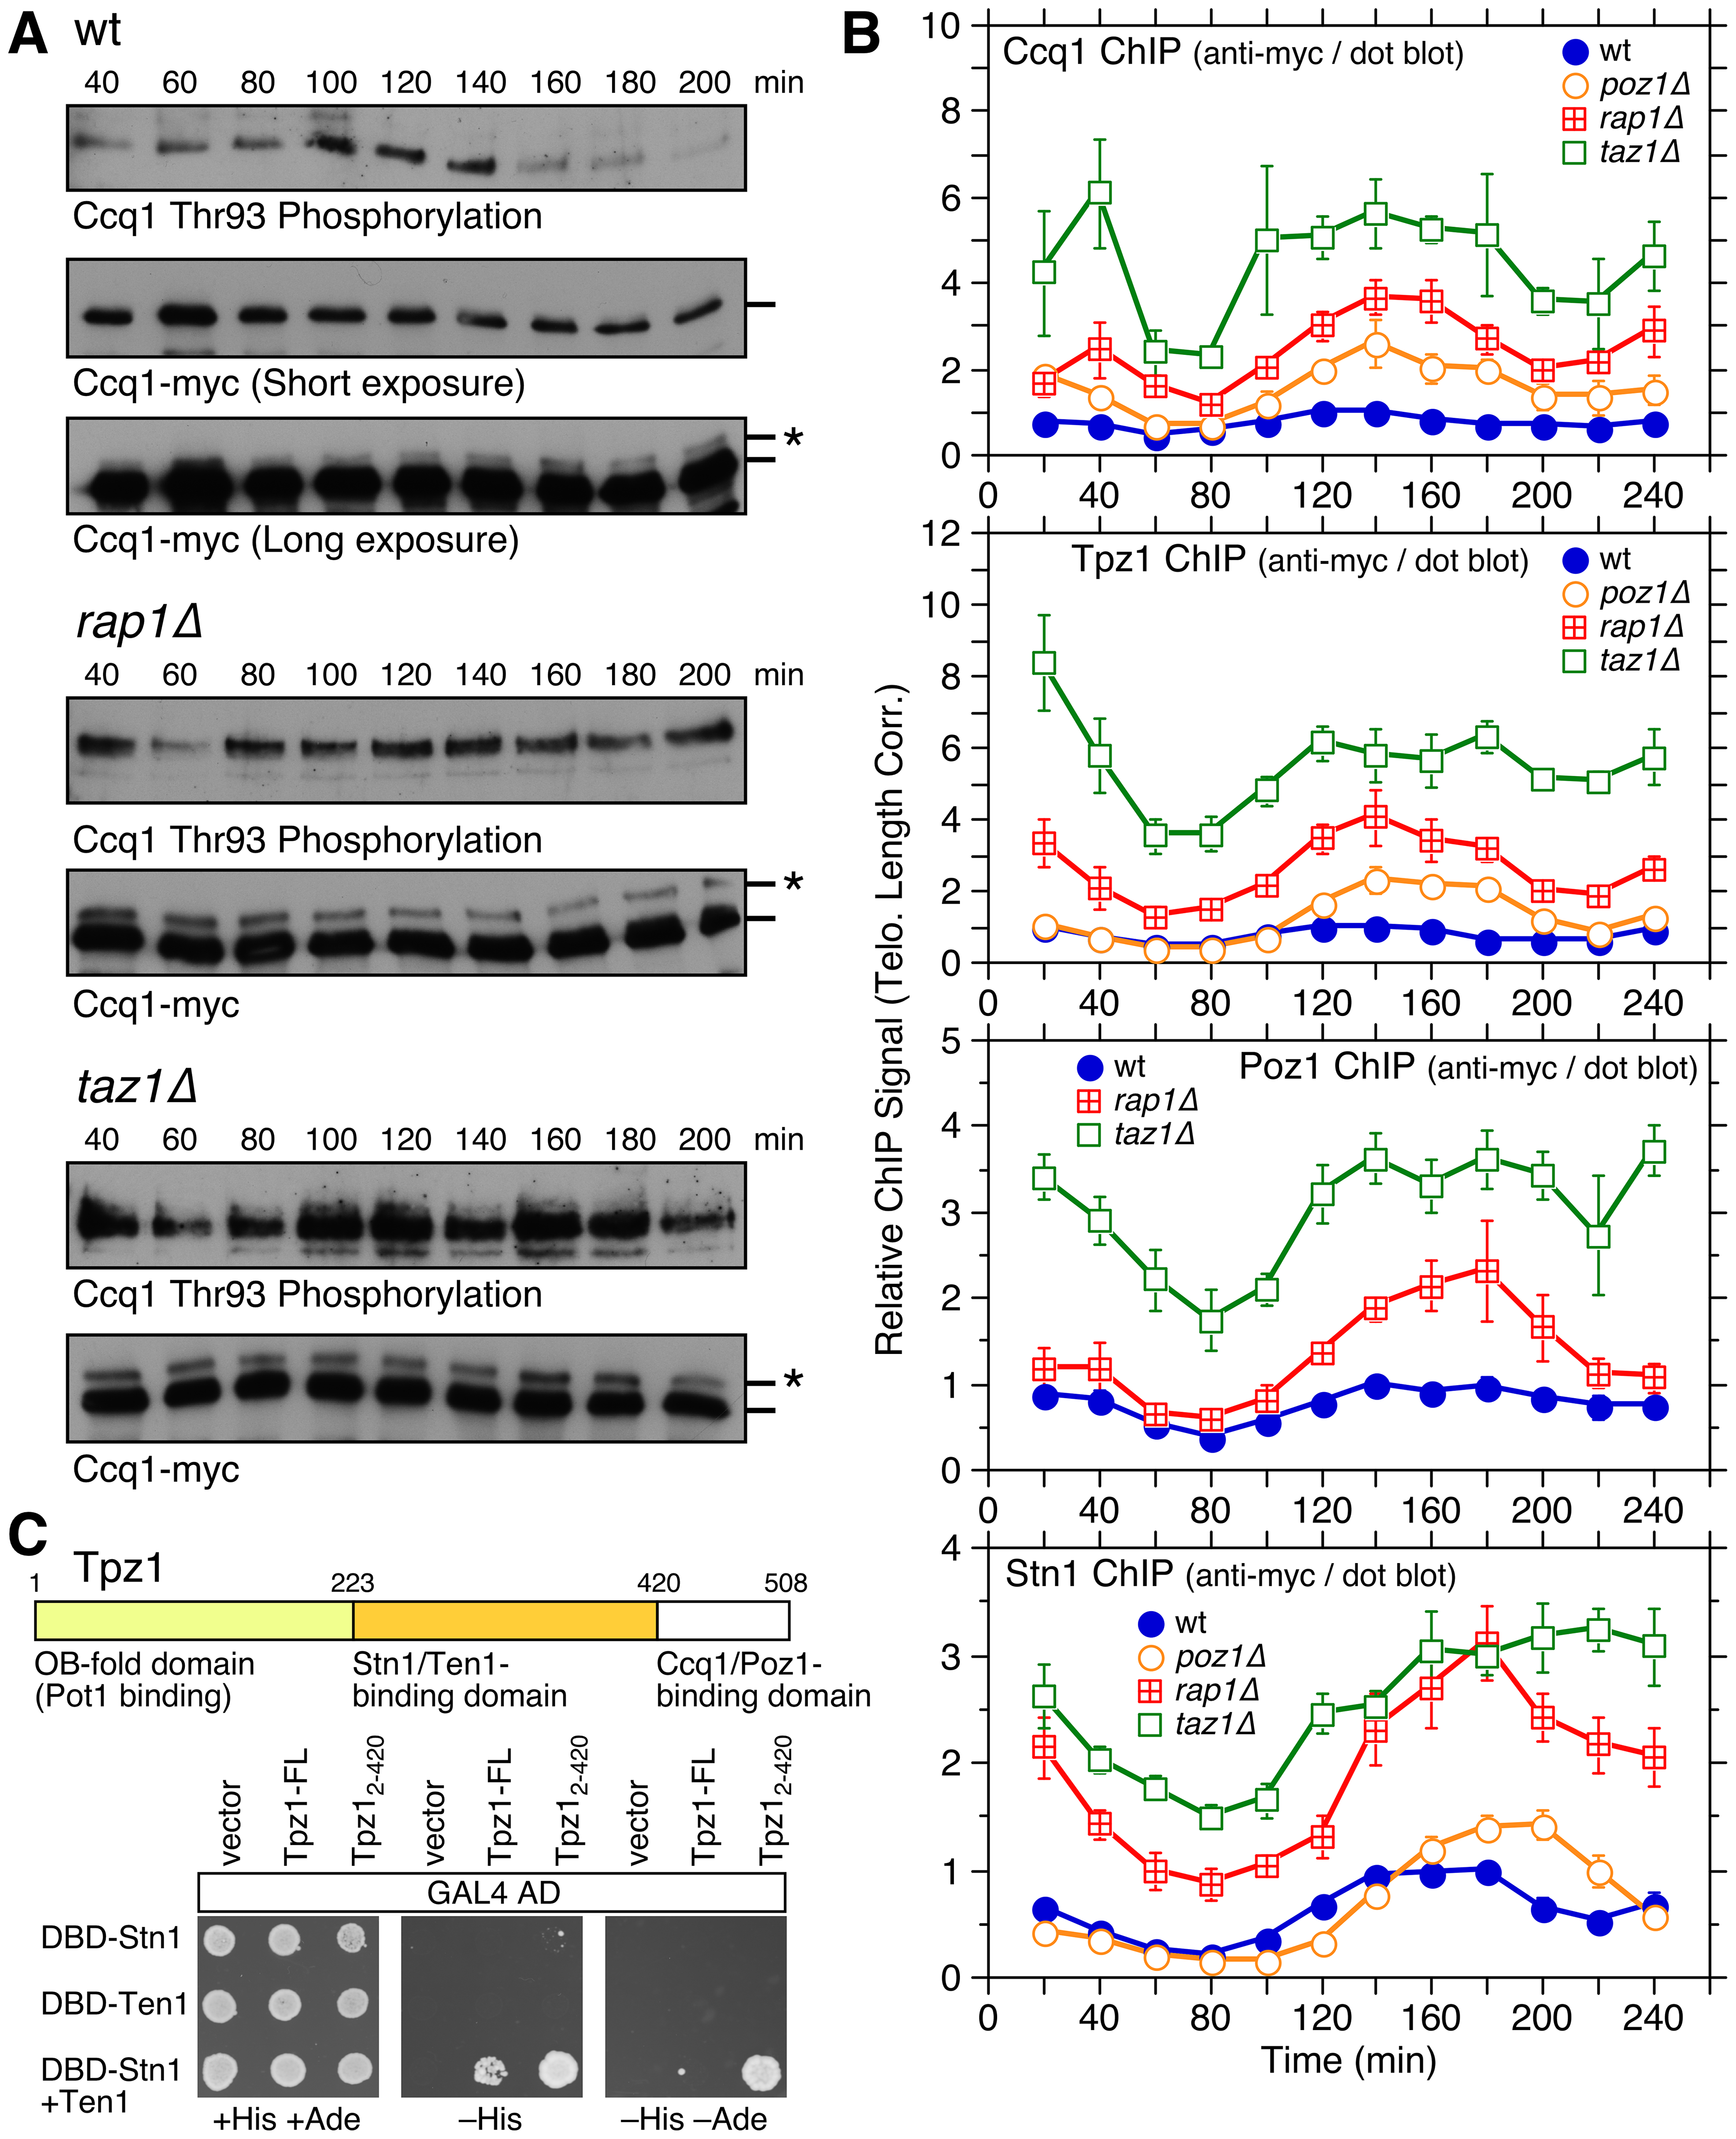 Cell cycle regulation of Ccq1 phosphorylation and cell cycle ChIP assays to monitor telomere association of Stn1 and shelterin subunits Ccq1, Tpz1, and Poz1.